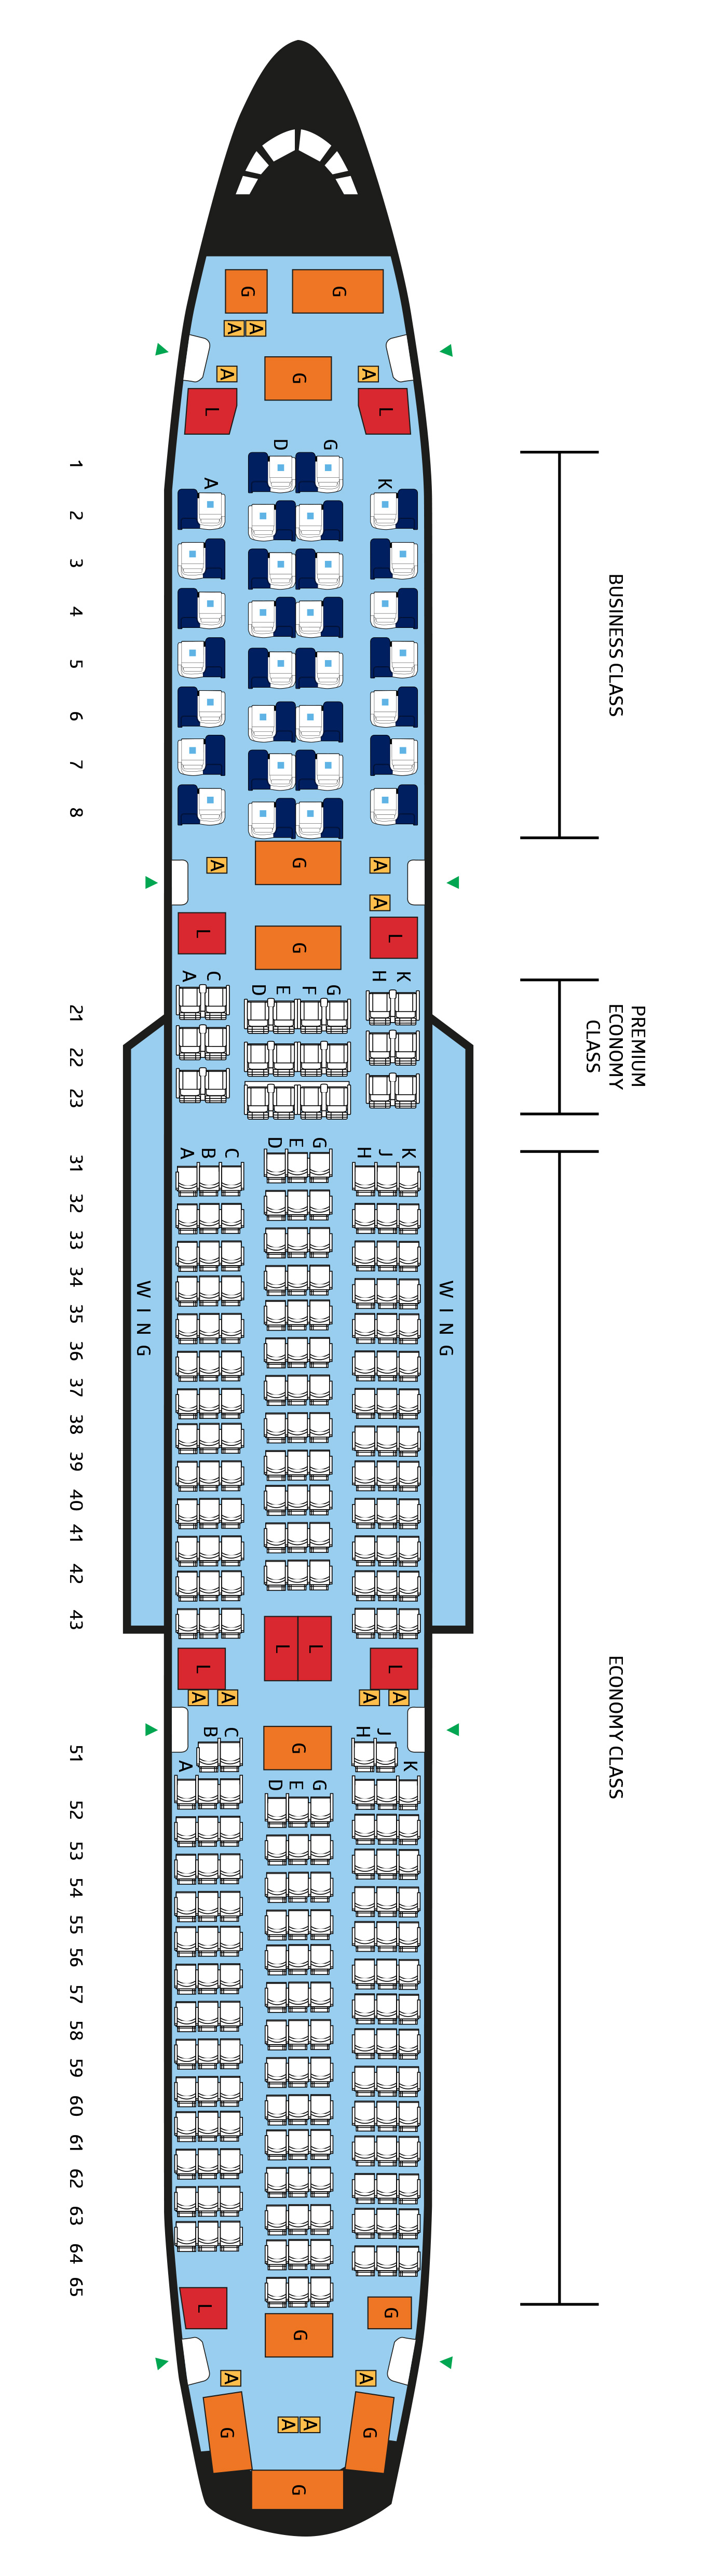 A350-900 A Seat Map on